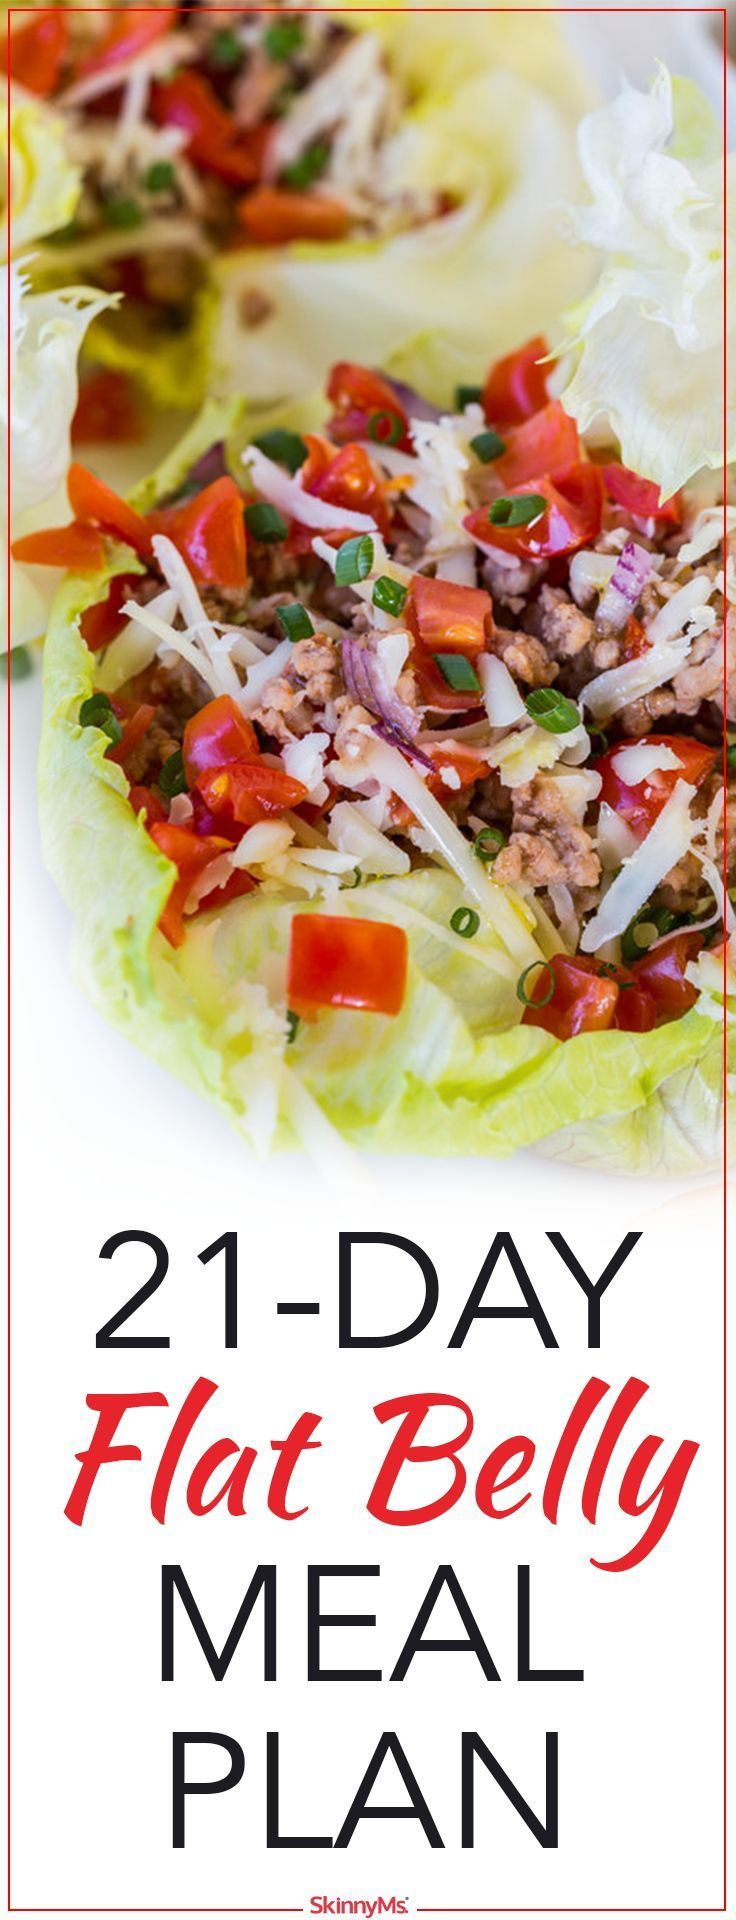 This flat belly meal plan incorporates foods that will help trim the waistline. #weightloss #flatbelly #skinnyms